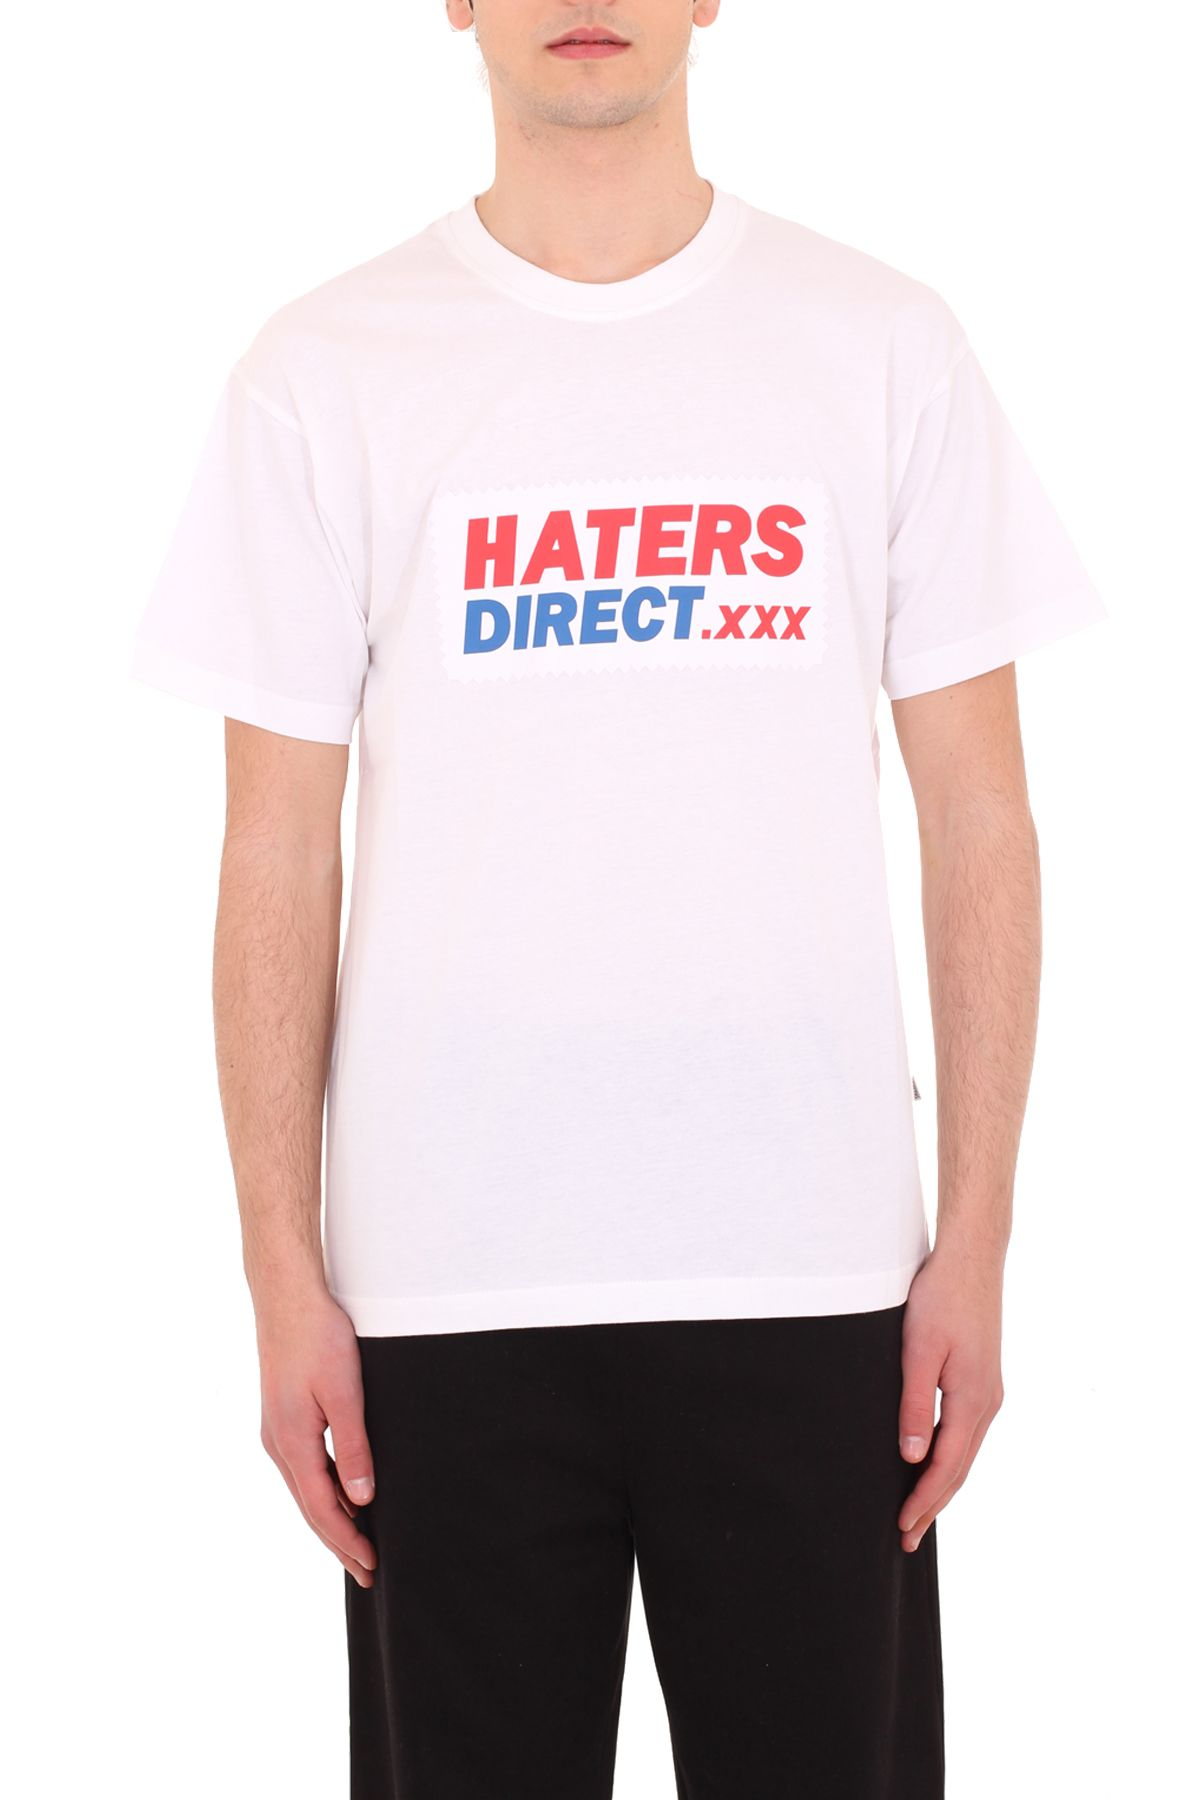 Haters Direct Large Print T-shirt